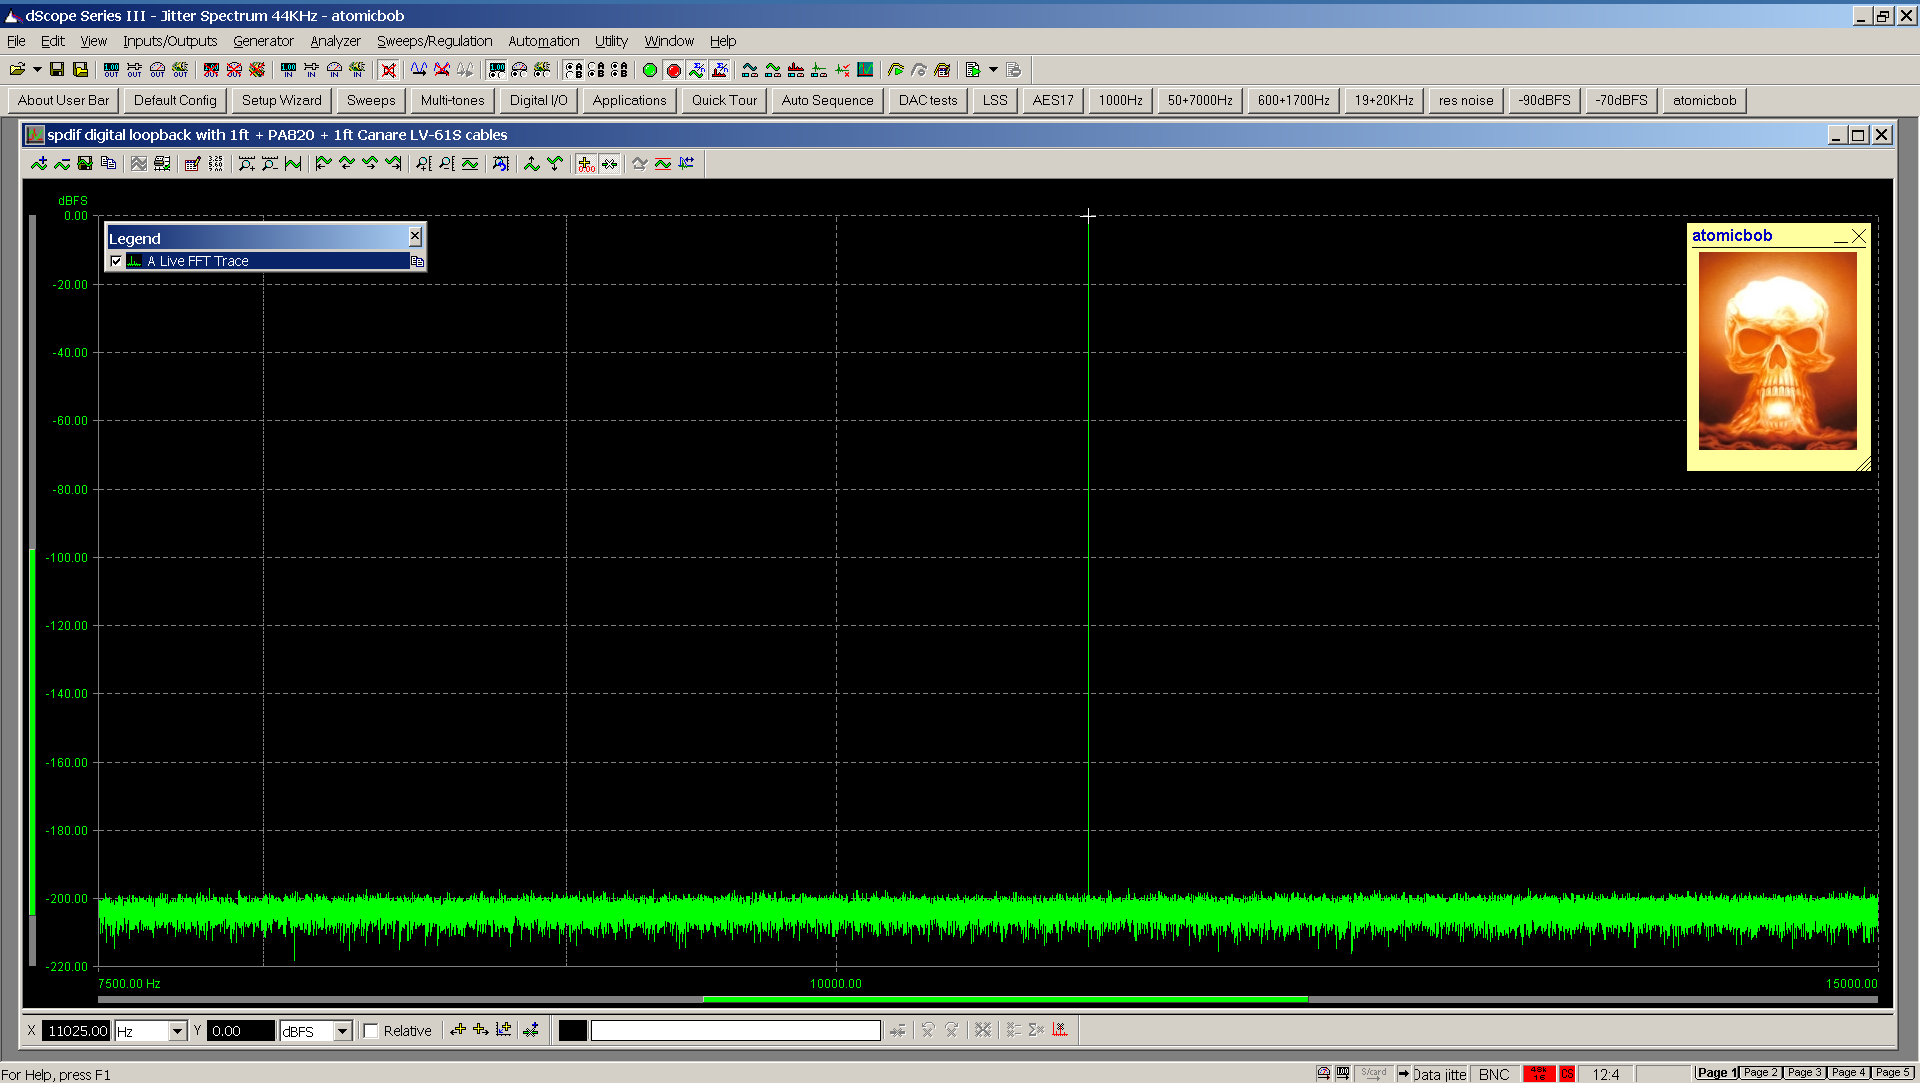 20201214 Inferred Jitter FFT - spdif loopback 1ft + PA820 + 1ft Canare LV-61S 44KHz.png